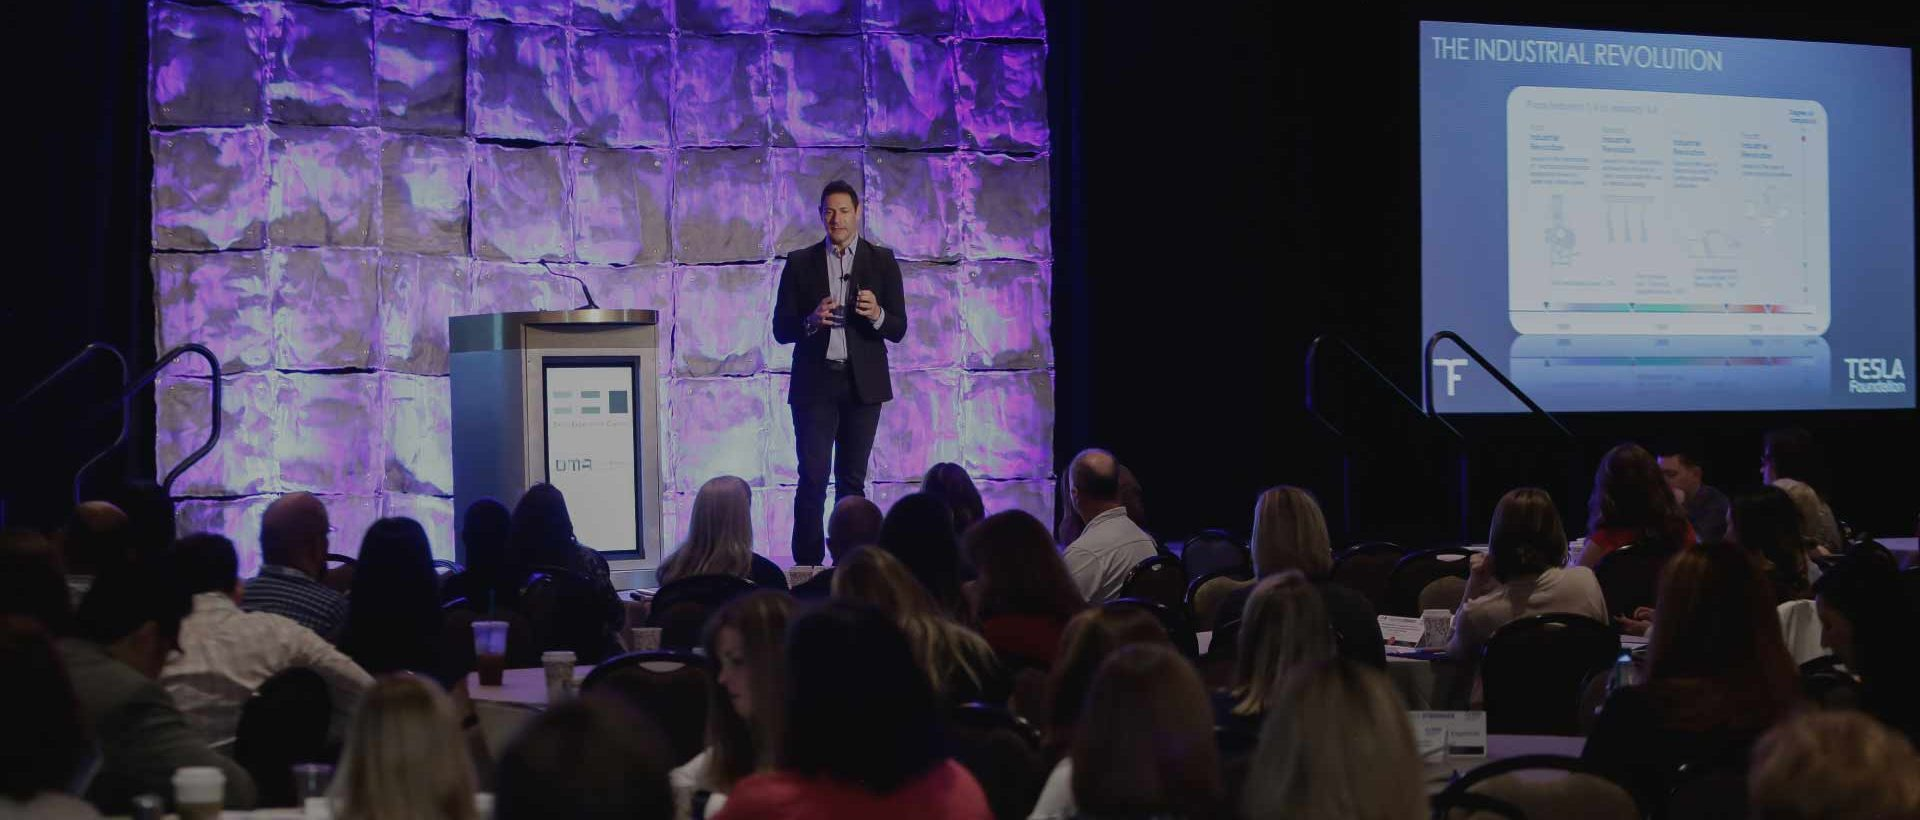 alphagamma ultimate list of digital marketing events in the US in 2018 entrepreneurship email evolution conference